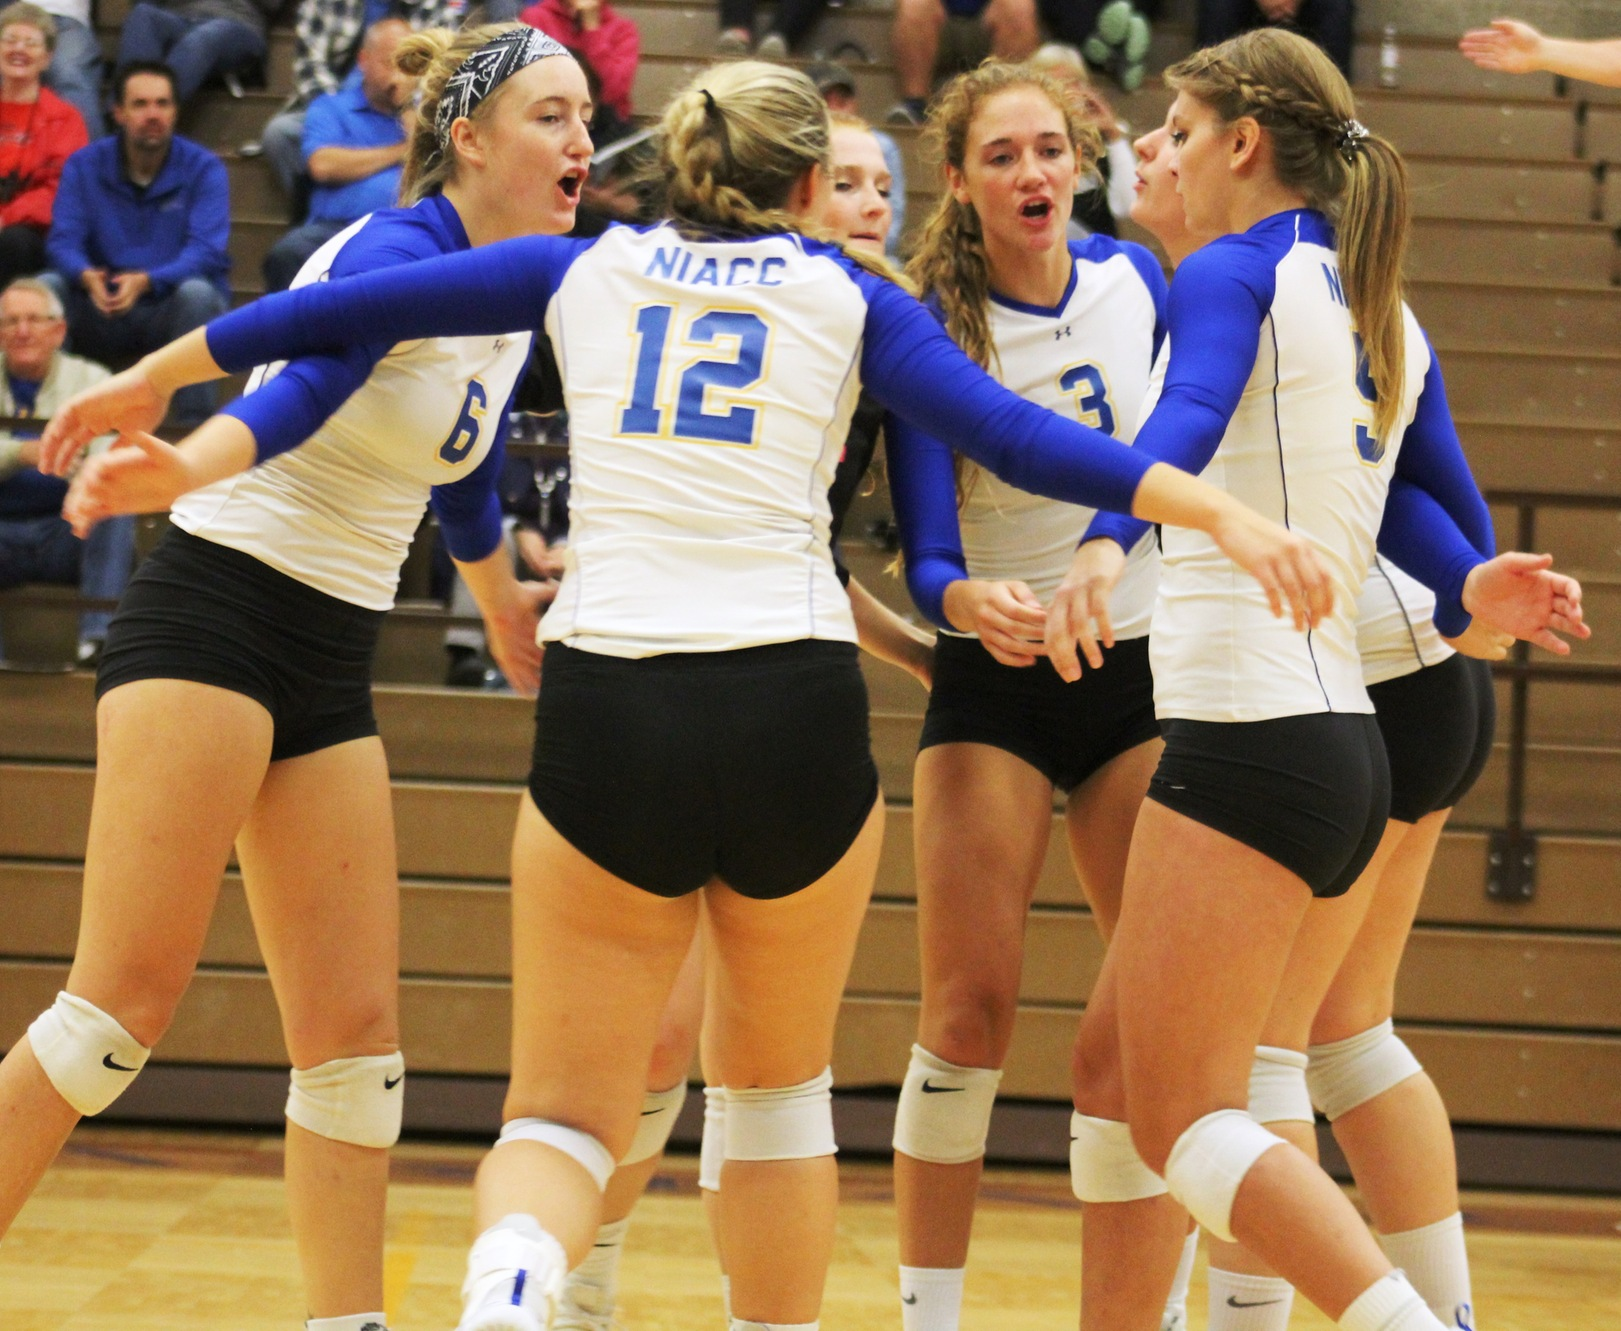 NIACC players celebrate a point in this season's match against Ellsworth.